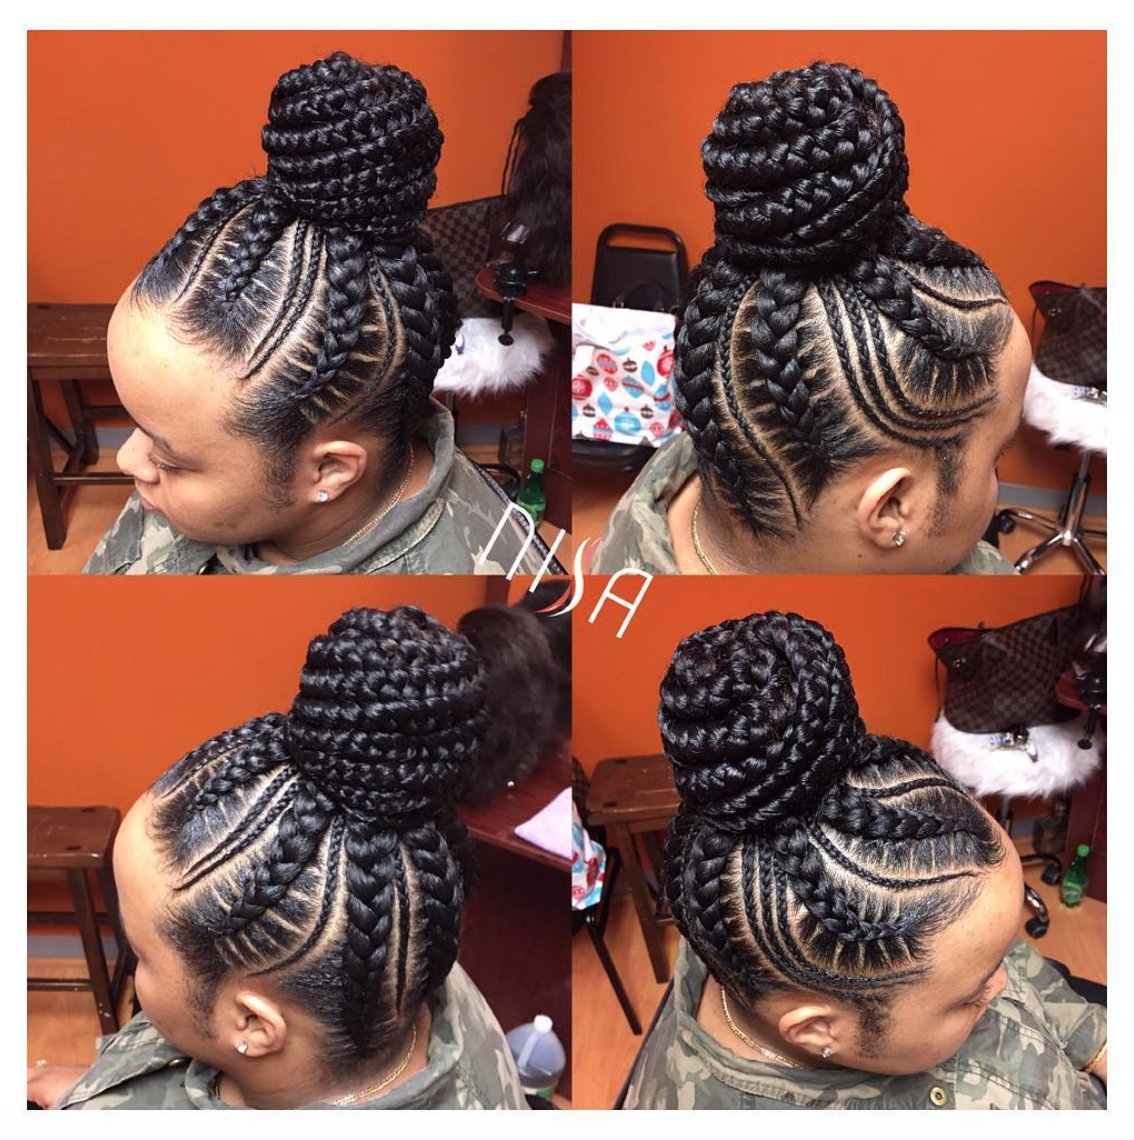 Nice Braids By Nisaraye Read The Article Here Http Blackhairinformation Com Hairstyle Gallery Nice Braids Nisar Avec Images Coiffure Cheveux Naturels Coiffures Filles